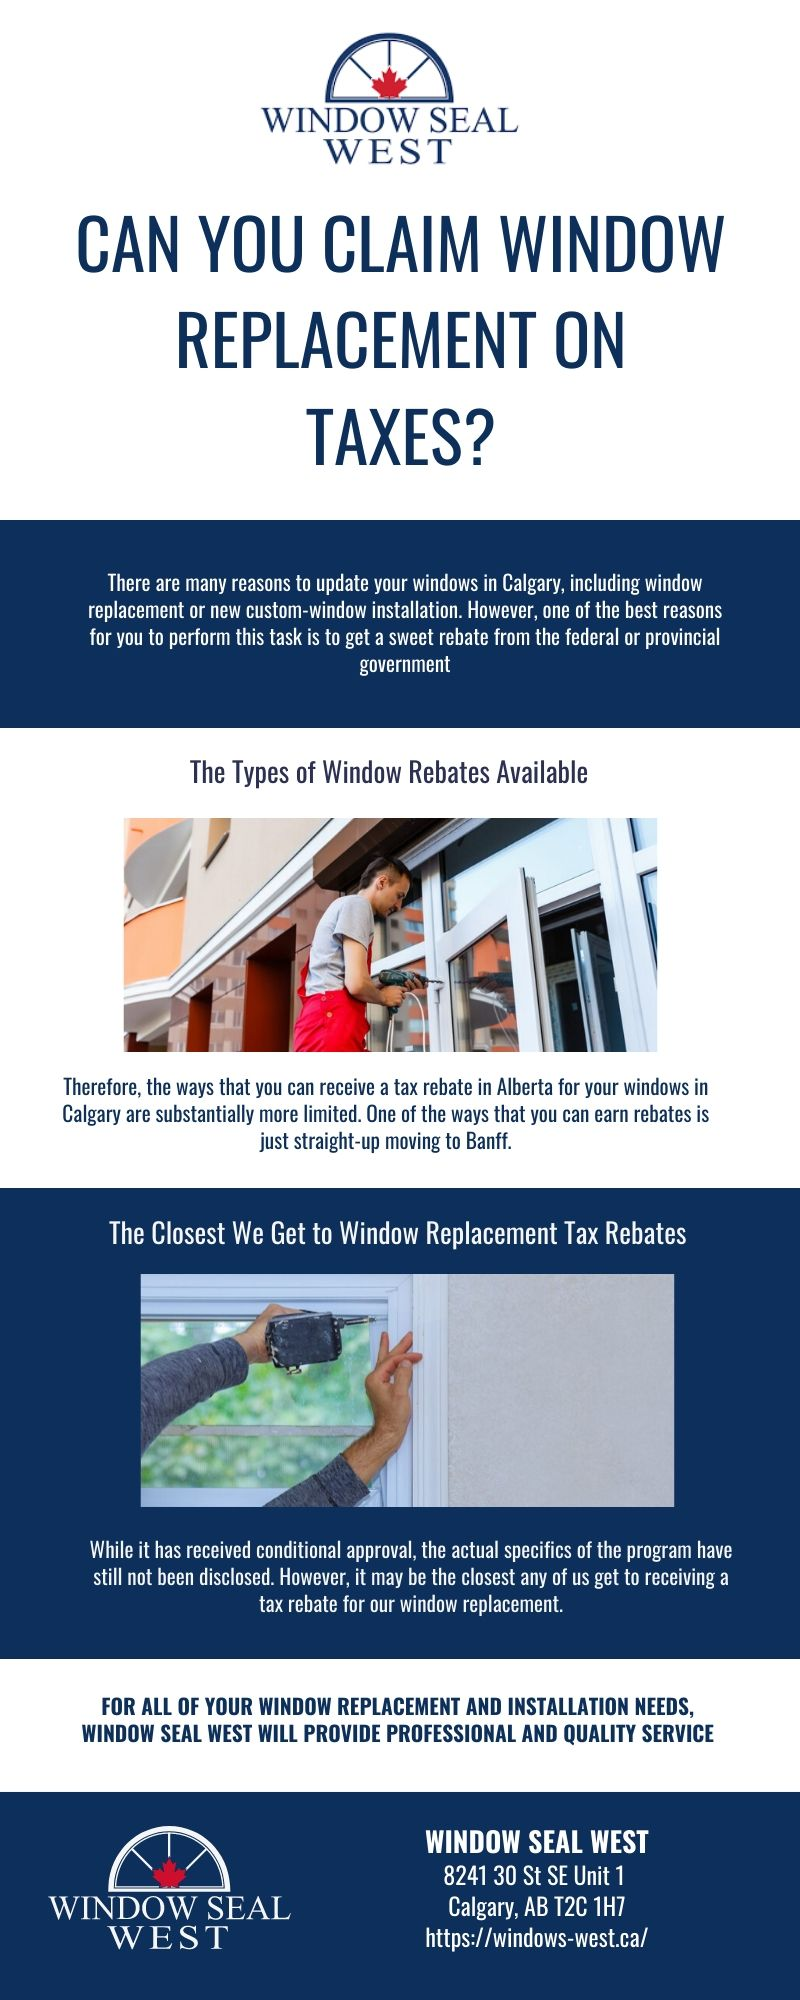 Can You Claim Window Replacement on Taxes?